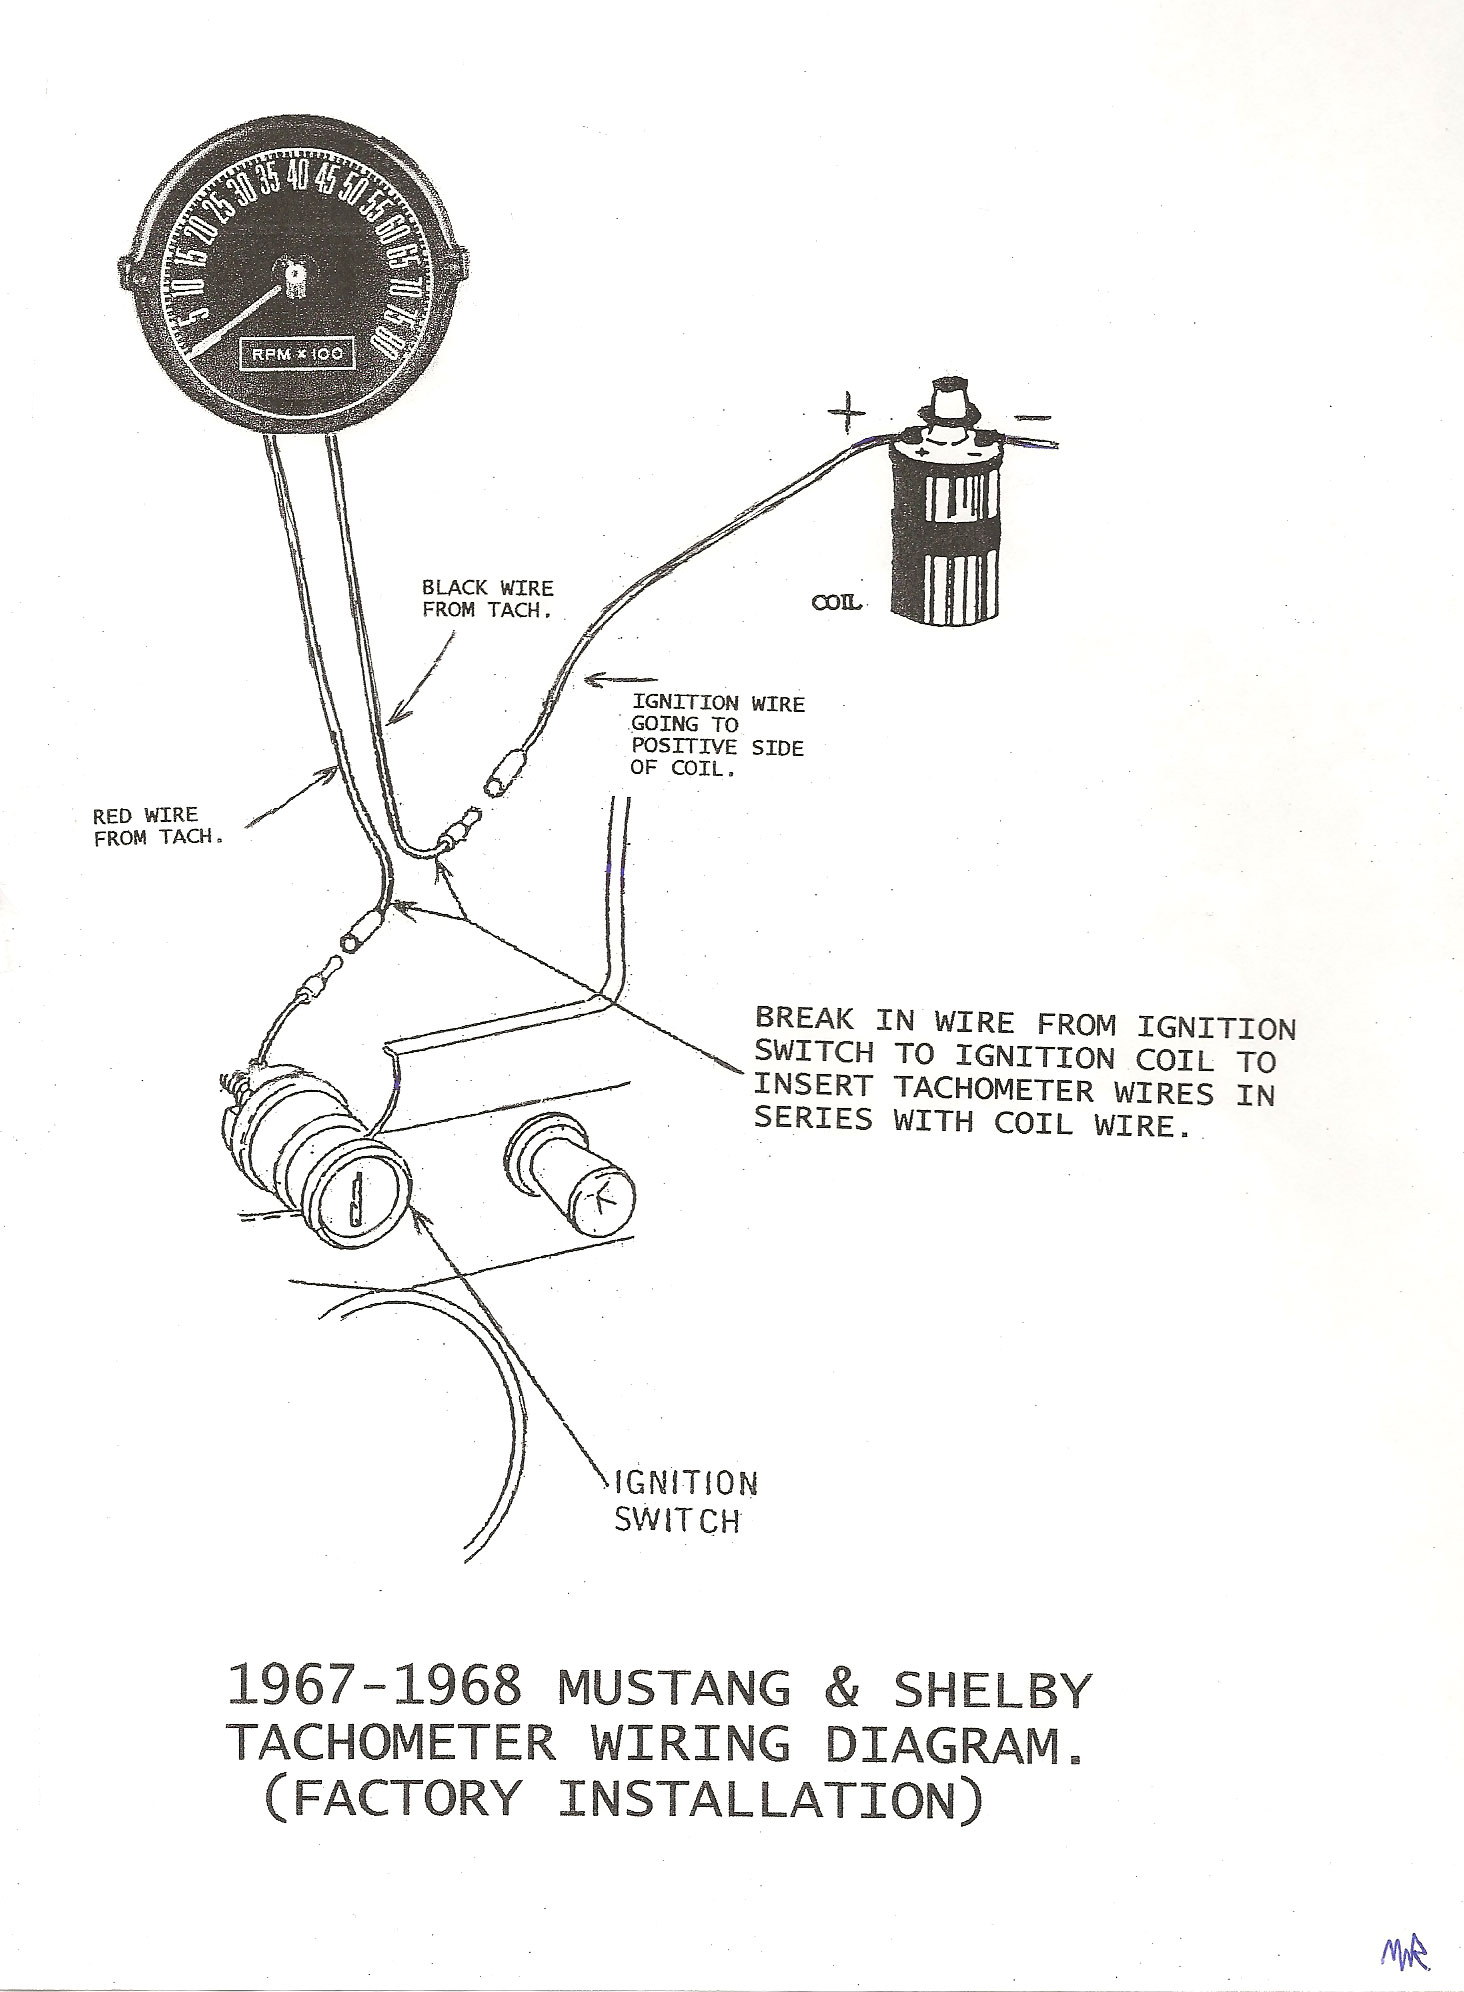 Tech Info Meter Wiring Diagram Usefulldatacom Ammeter Schematic And 1967 68 Mustang Shelby Factory Tach Jpeg Image